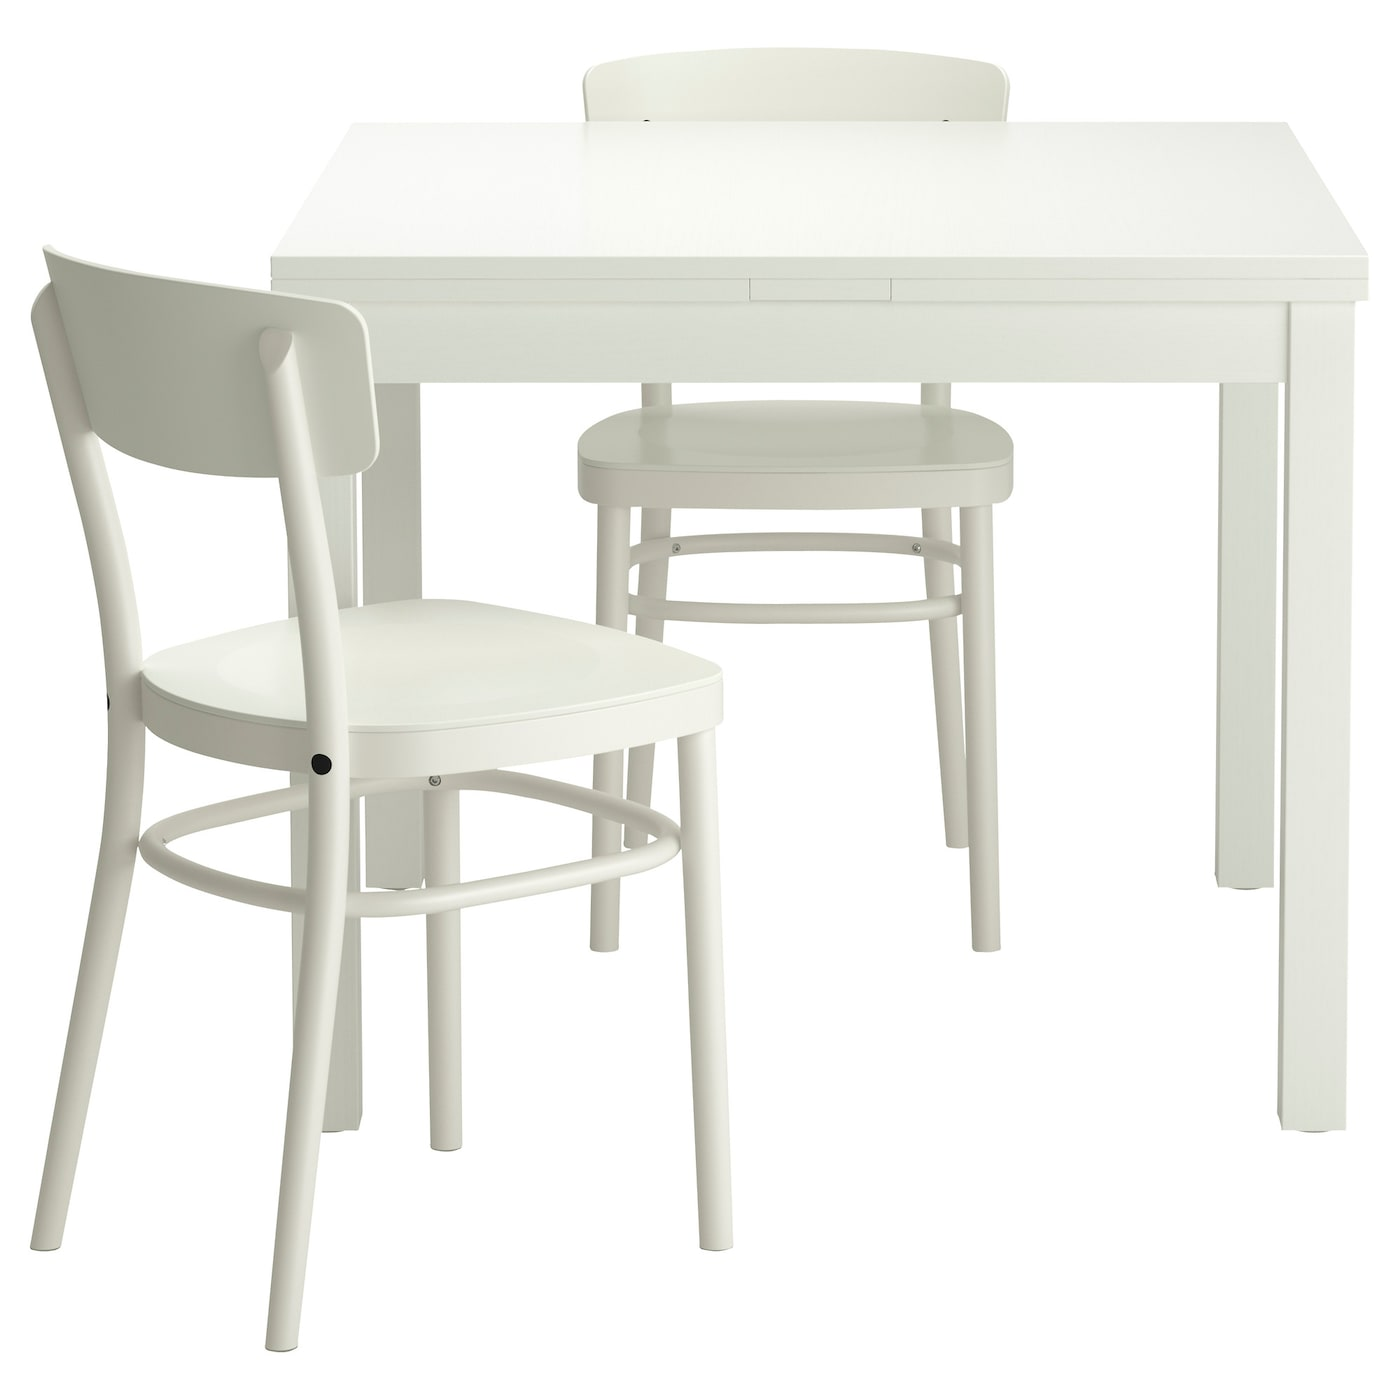 IKEA IDOLF/BJURSTA Table And 2 Chairs The Clear Lacquered Surface Is Easy To